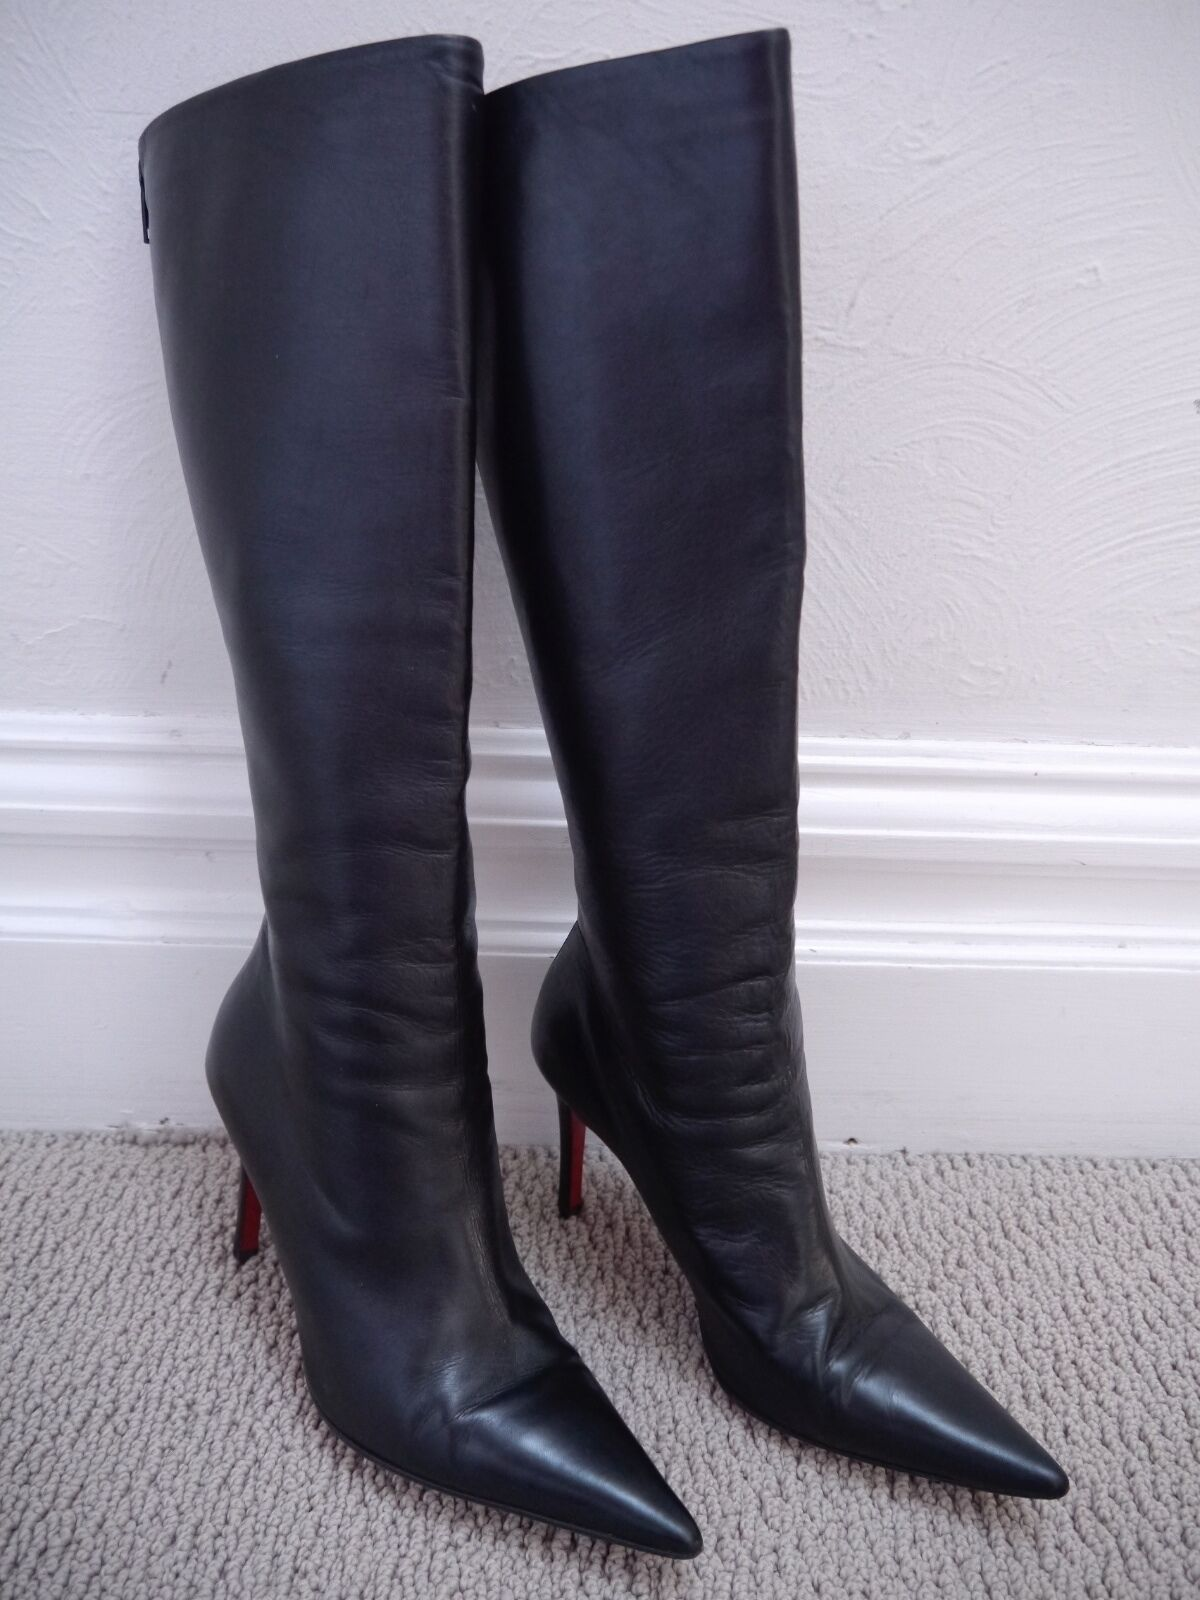 CHRISTIAN LOUBOUTIN black leather pointed toe knee high boots Italian size 36.5